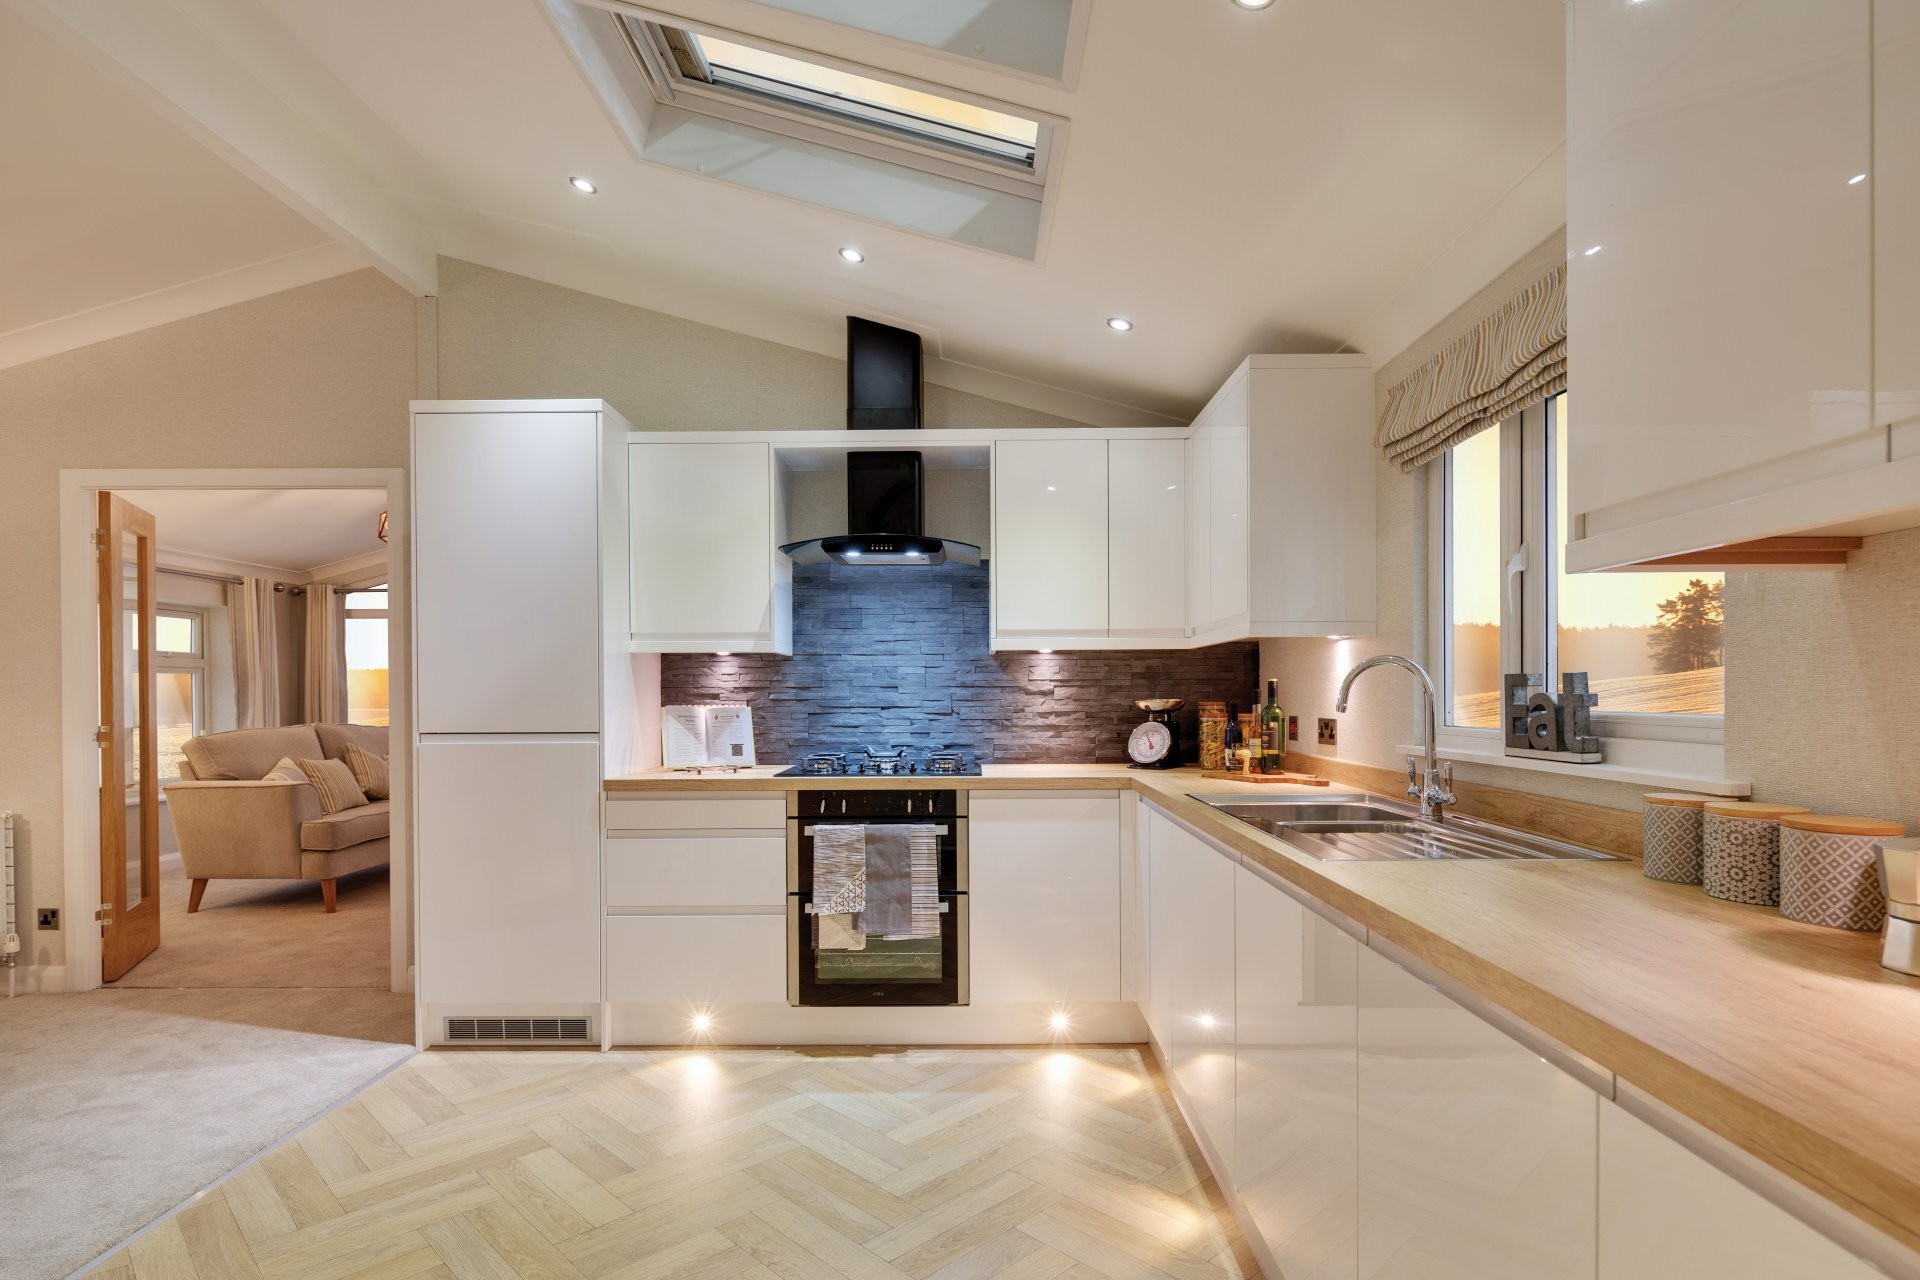 Delamere kitchen interior.